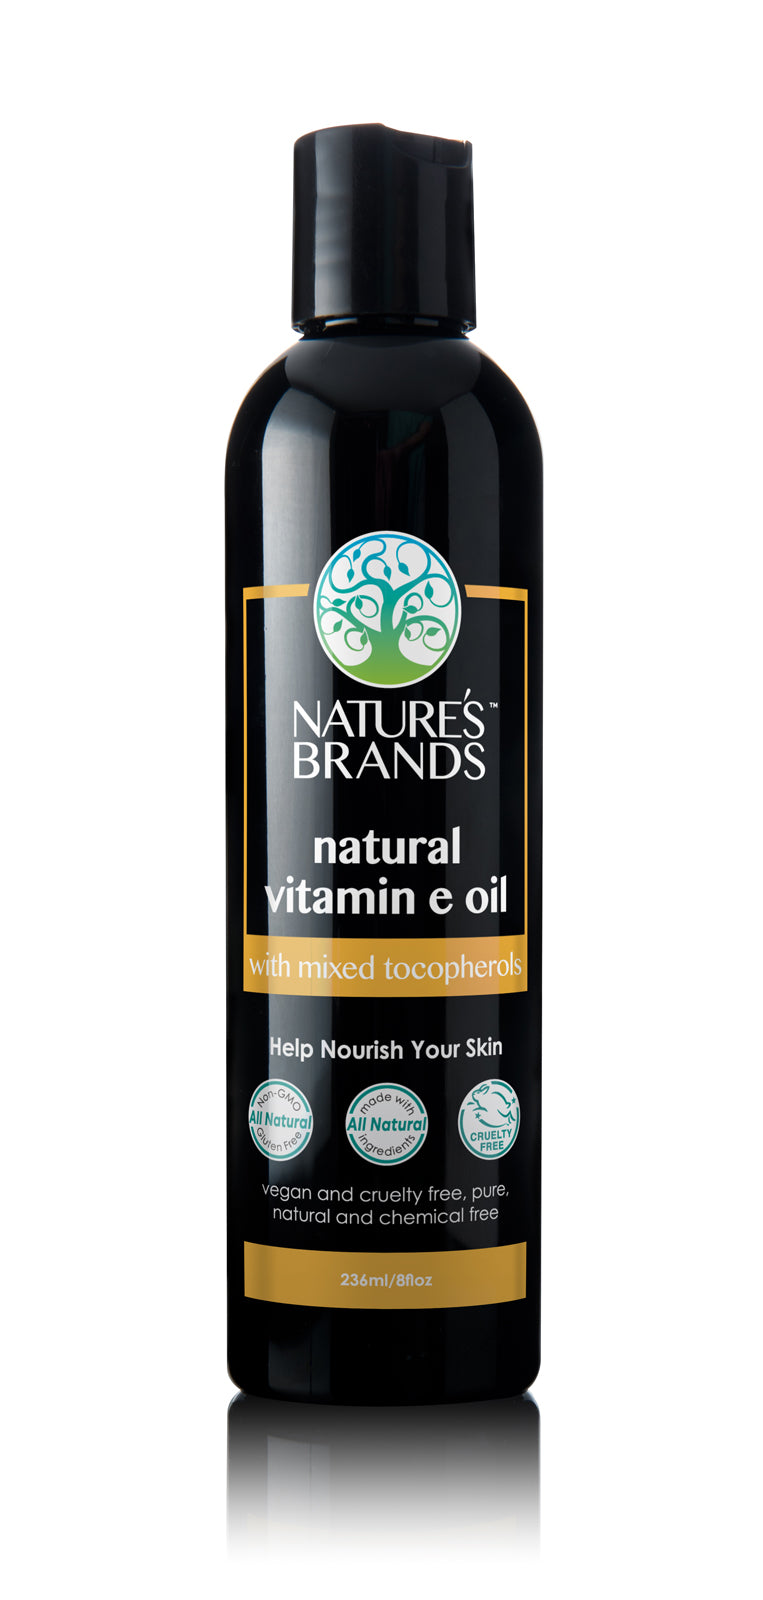 Herbal Choice Mari Natural Vitamin E Oil - Herbal Choice Mari Natural Vitamin E Oil - Herbal Choice Mari Natural Vitamin E Oil